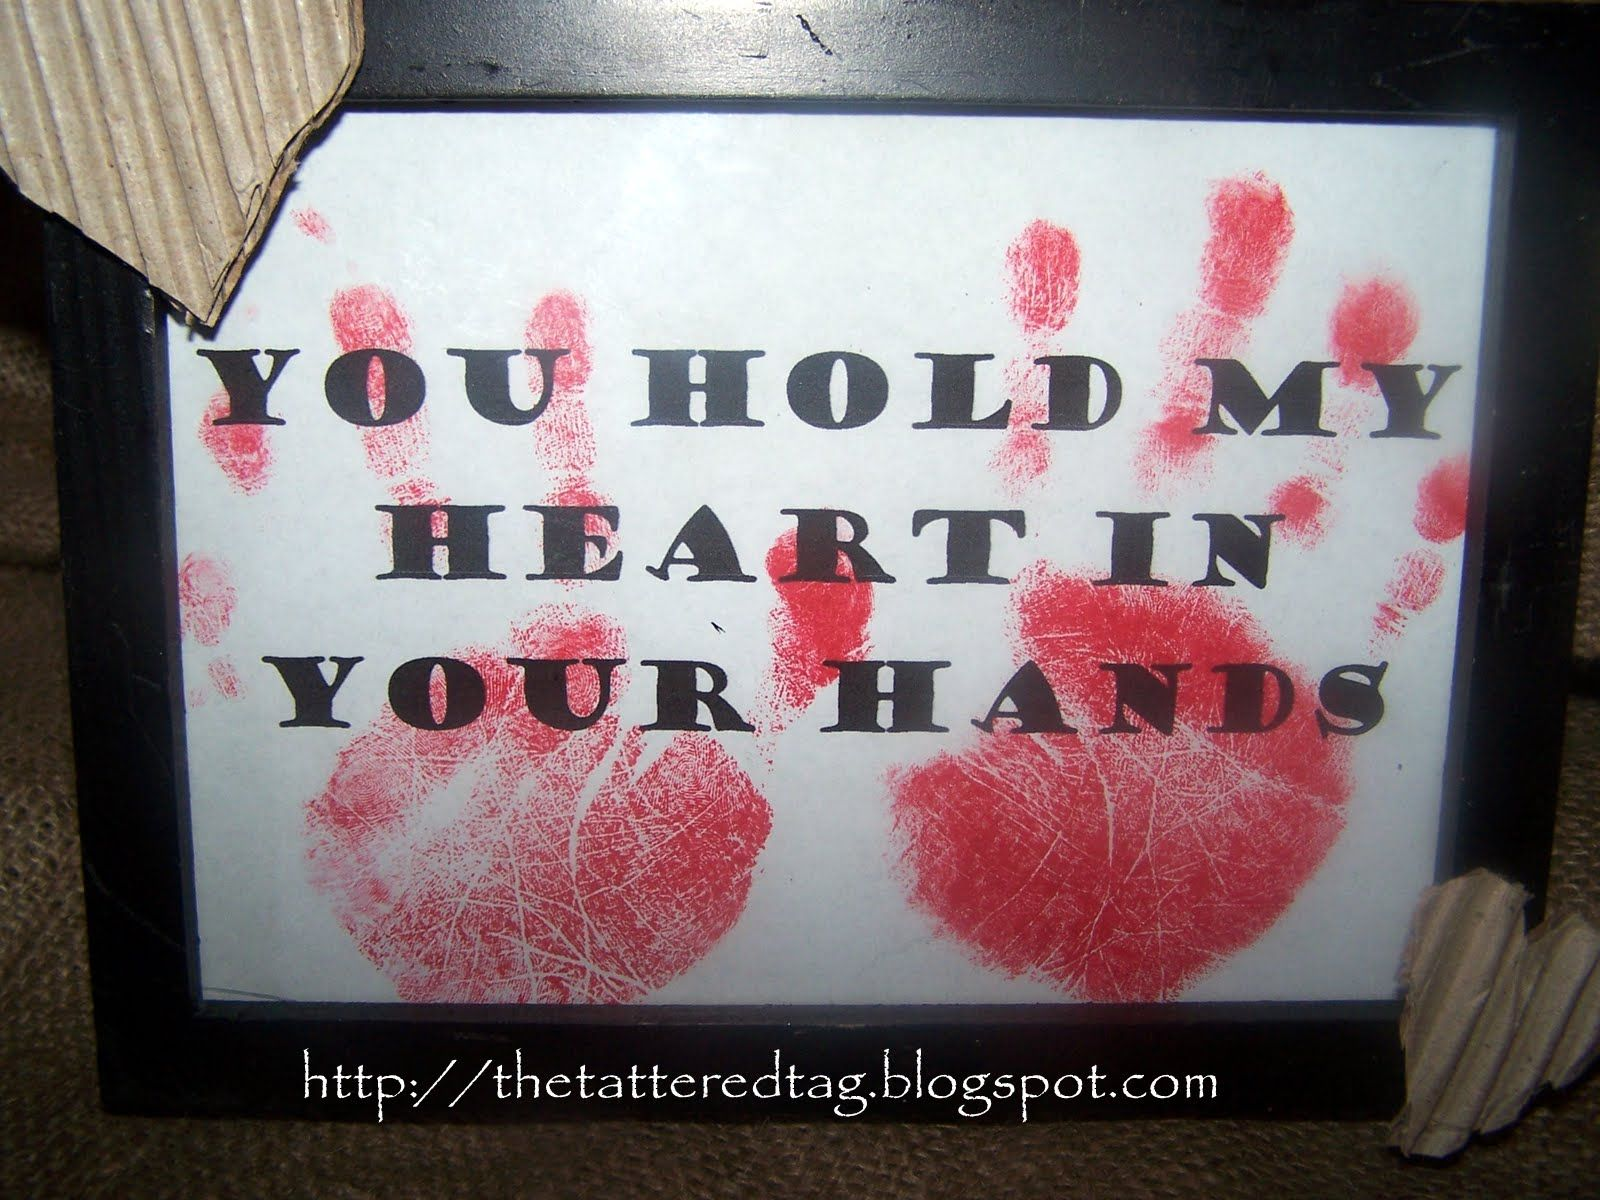 Valentines Day Quotes For Grandma: Creative Homemade Valentine's Day Gifts For Grandparents